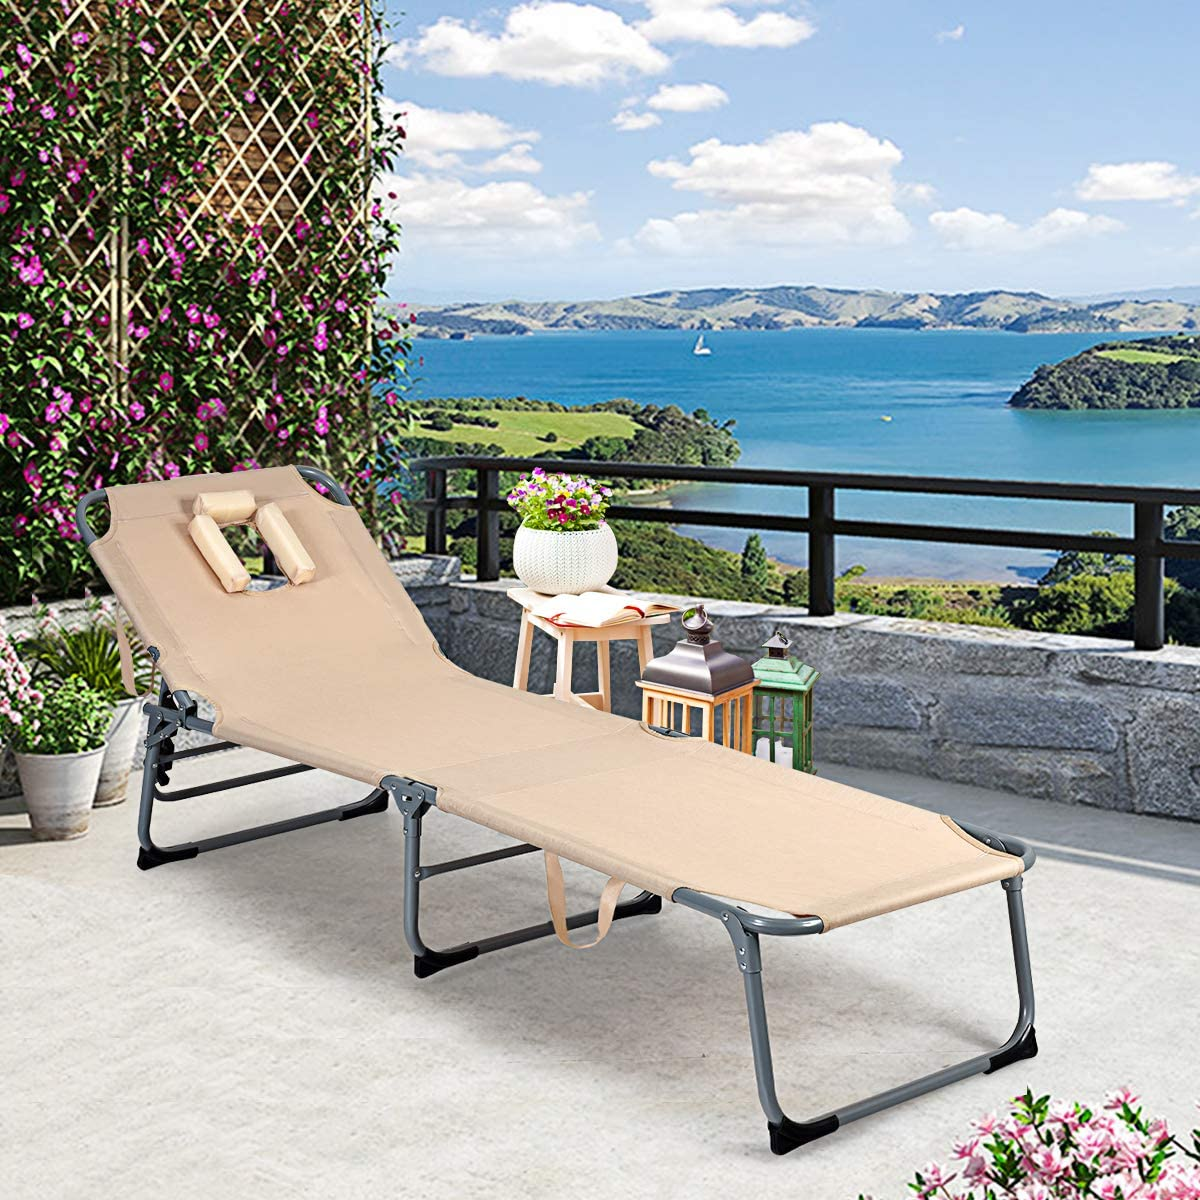 Foldable Beach Bed Cot for Backyard Patio Pool Sunbathing Headrest and Tray Beige Giantex Outdoor Folding Chaise Lounge Chair Adjustable Camping Recliner Chair with Pillow